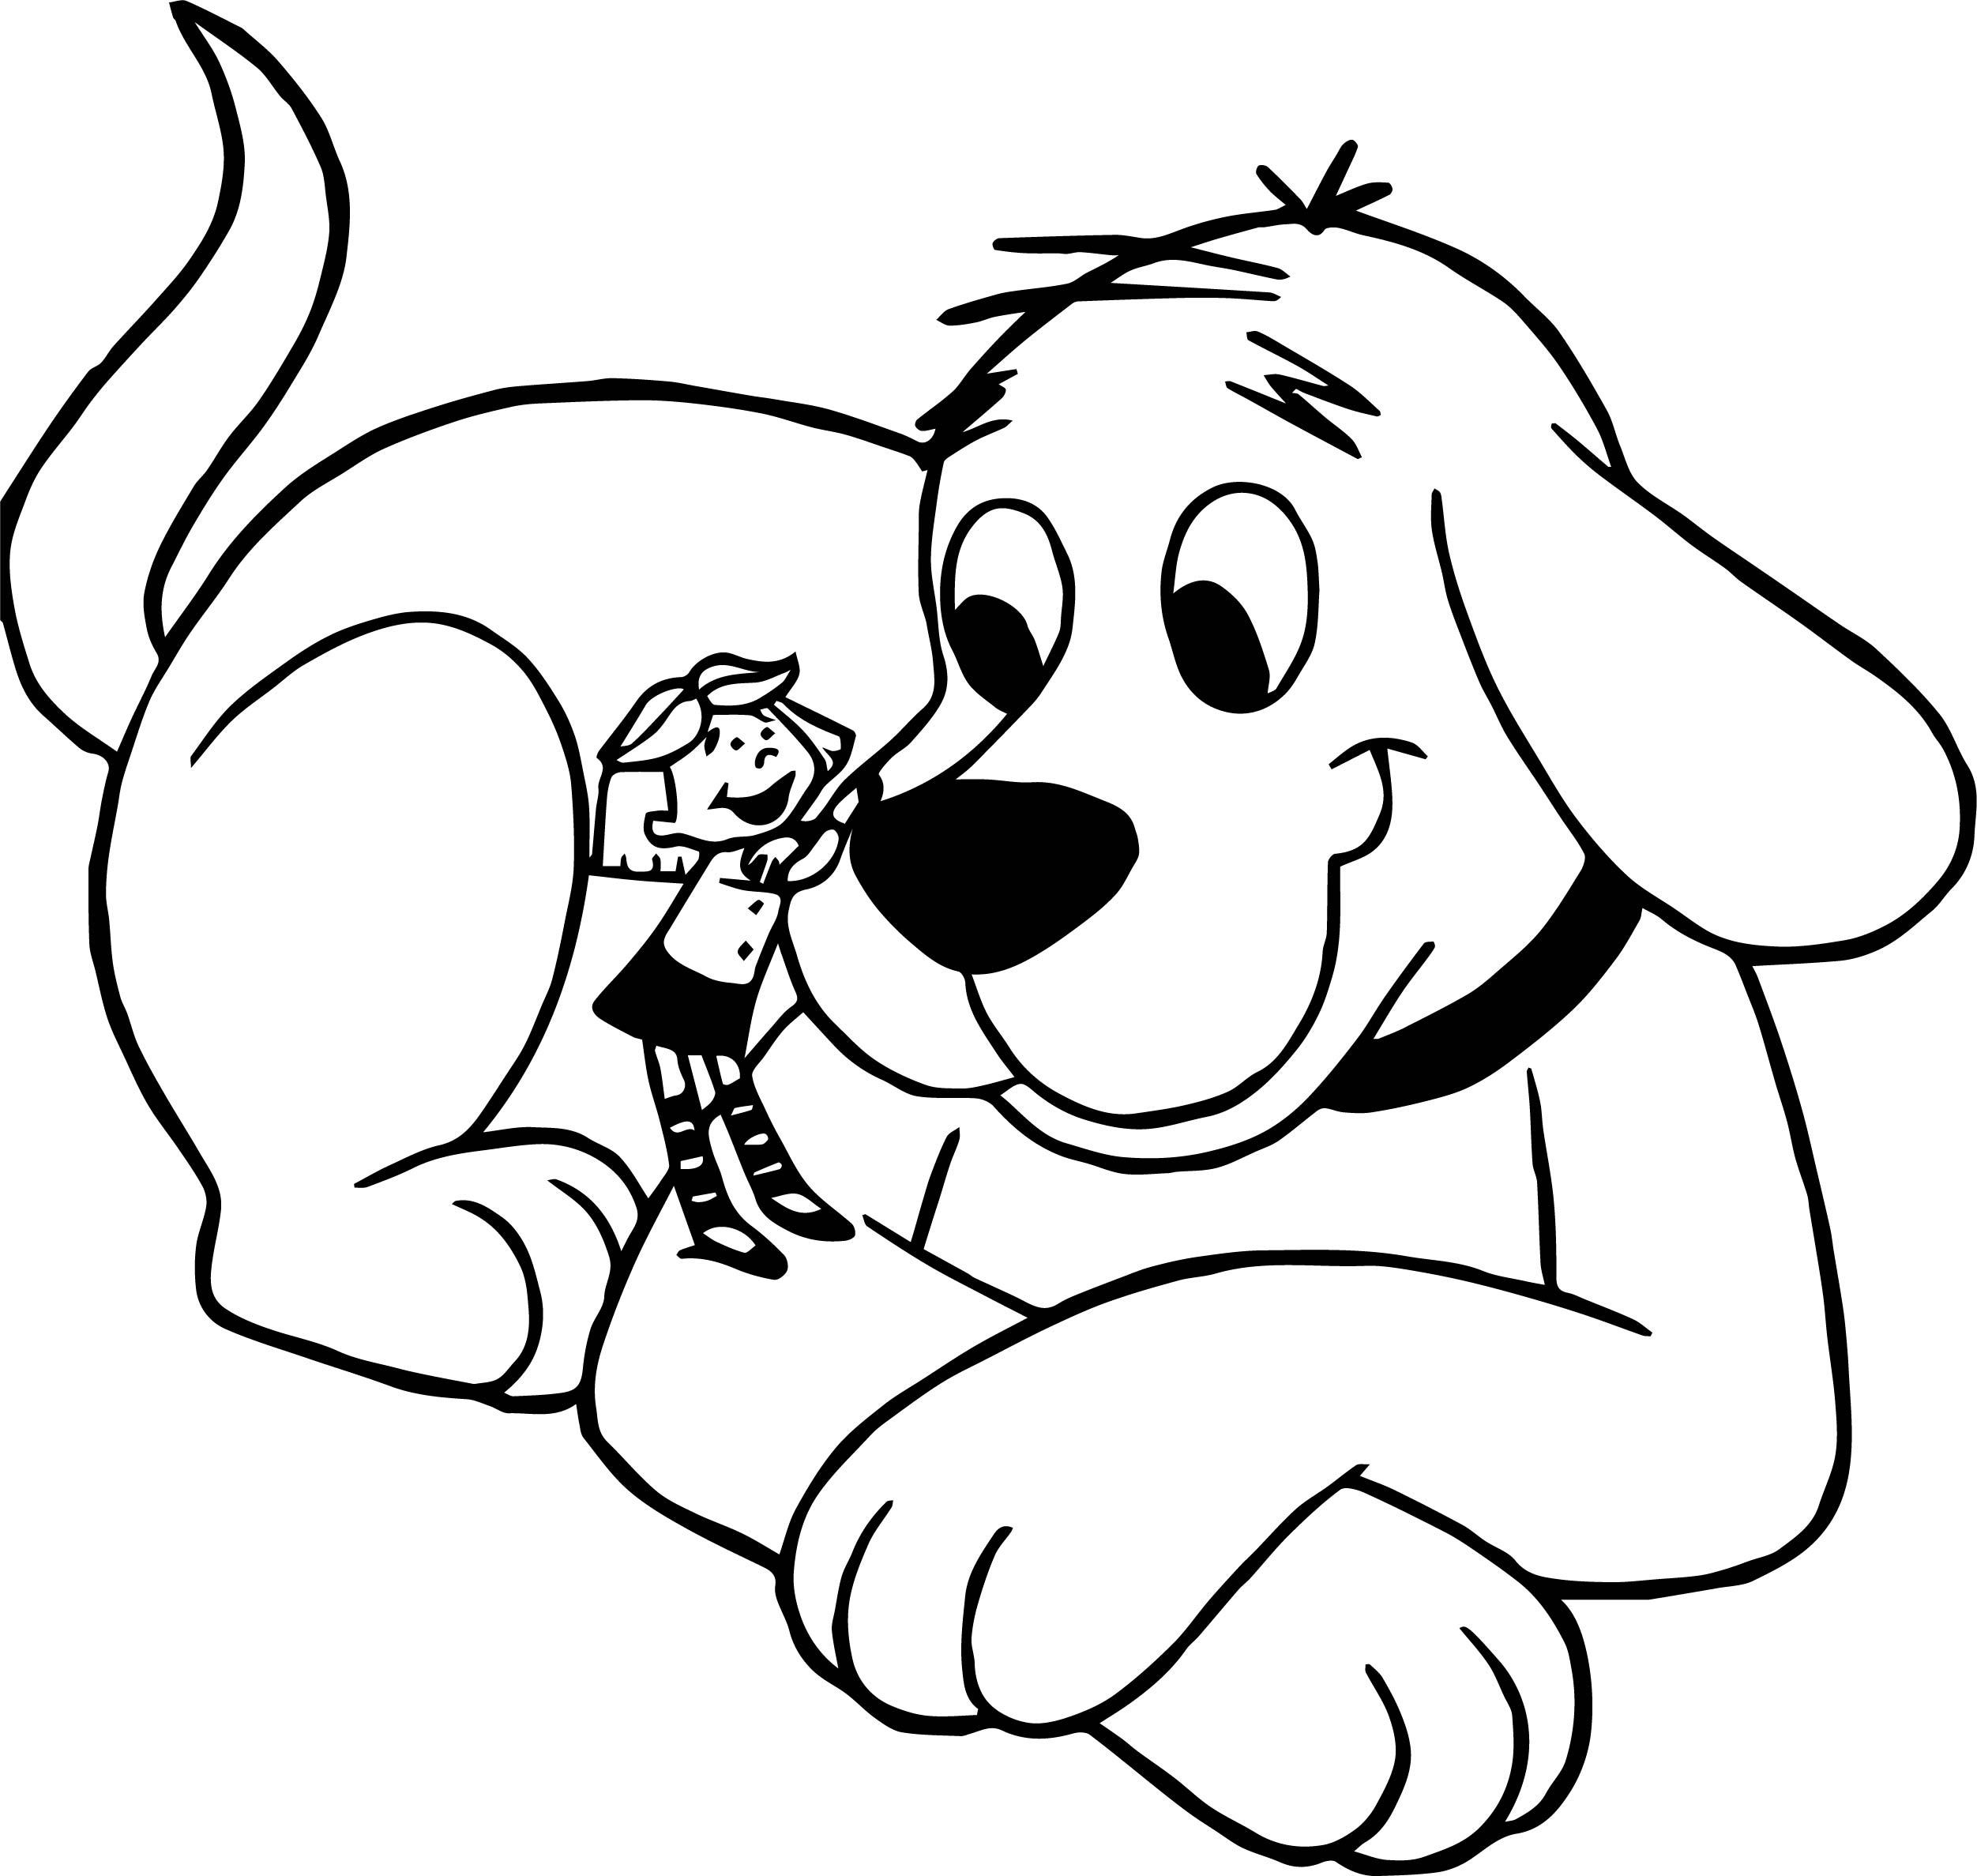 Clifford the big red and small girl dog coloring page for Clifford coloring pages